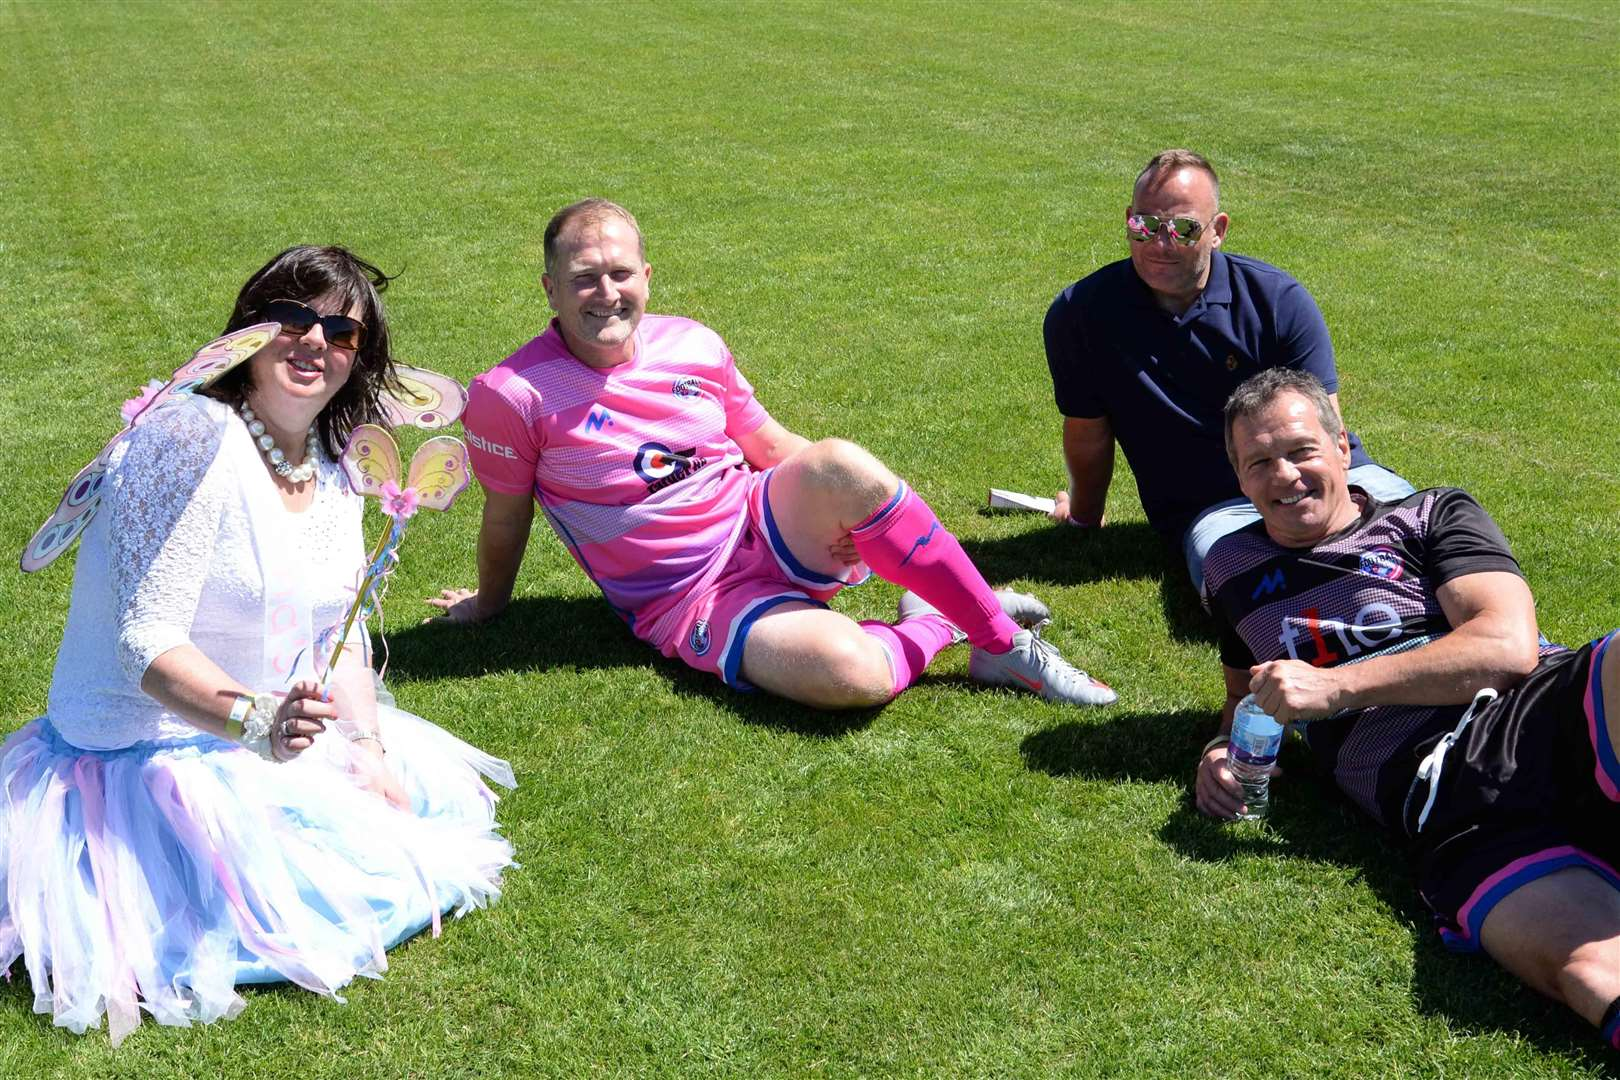 Stamford's Zeeco stadium hosted this year's 'Football versus Cancer' match